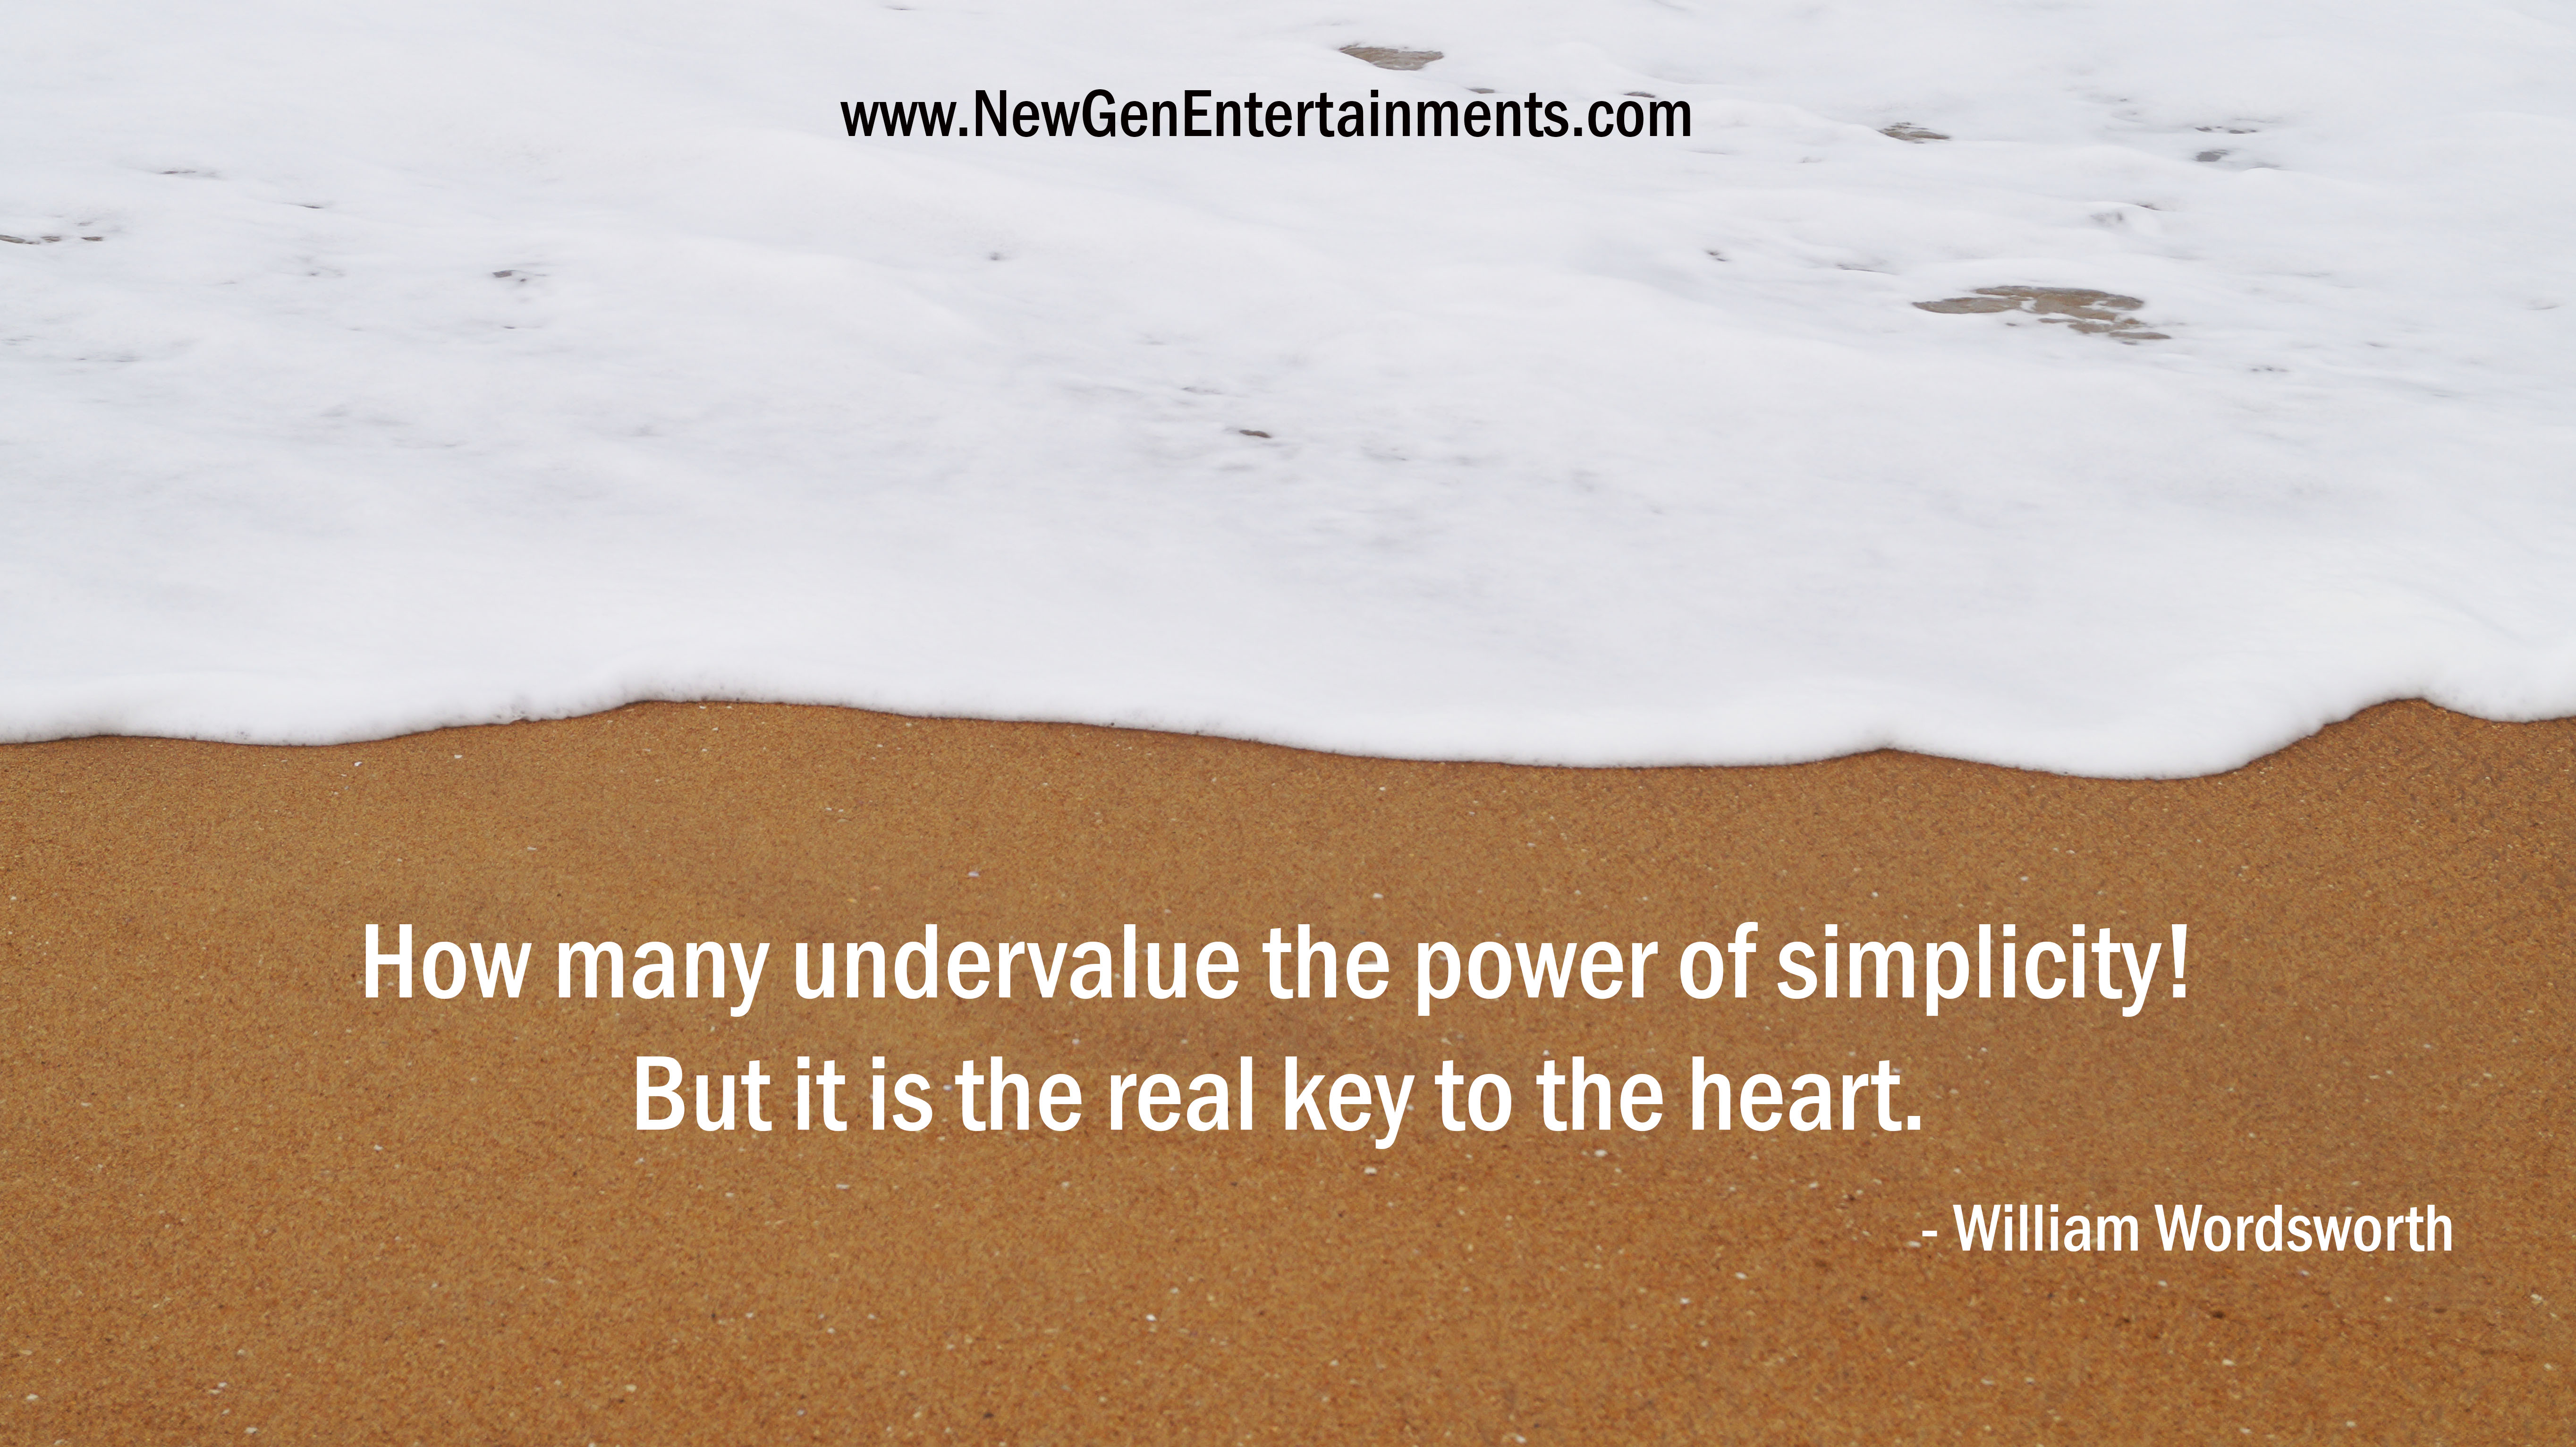 How many undervalue the power of simplicity! But it is the real key to the heart